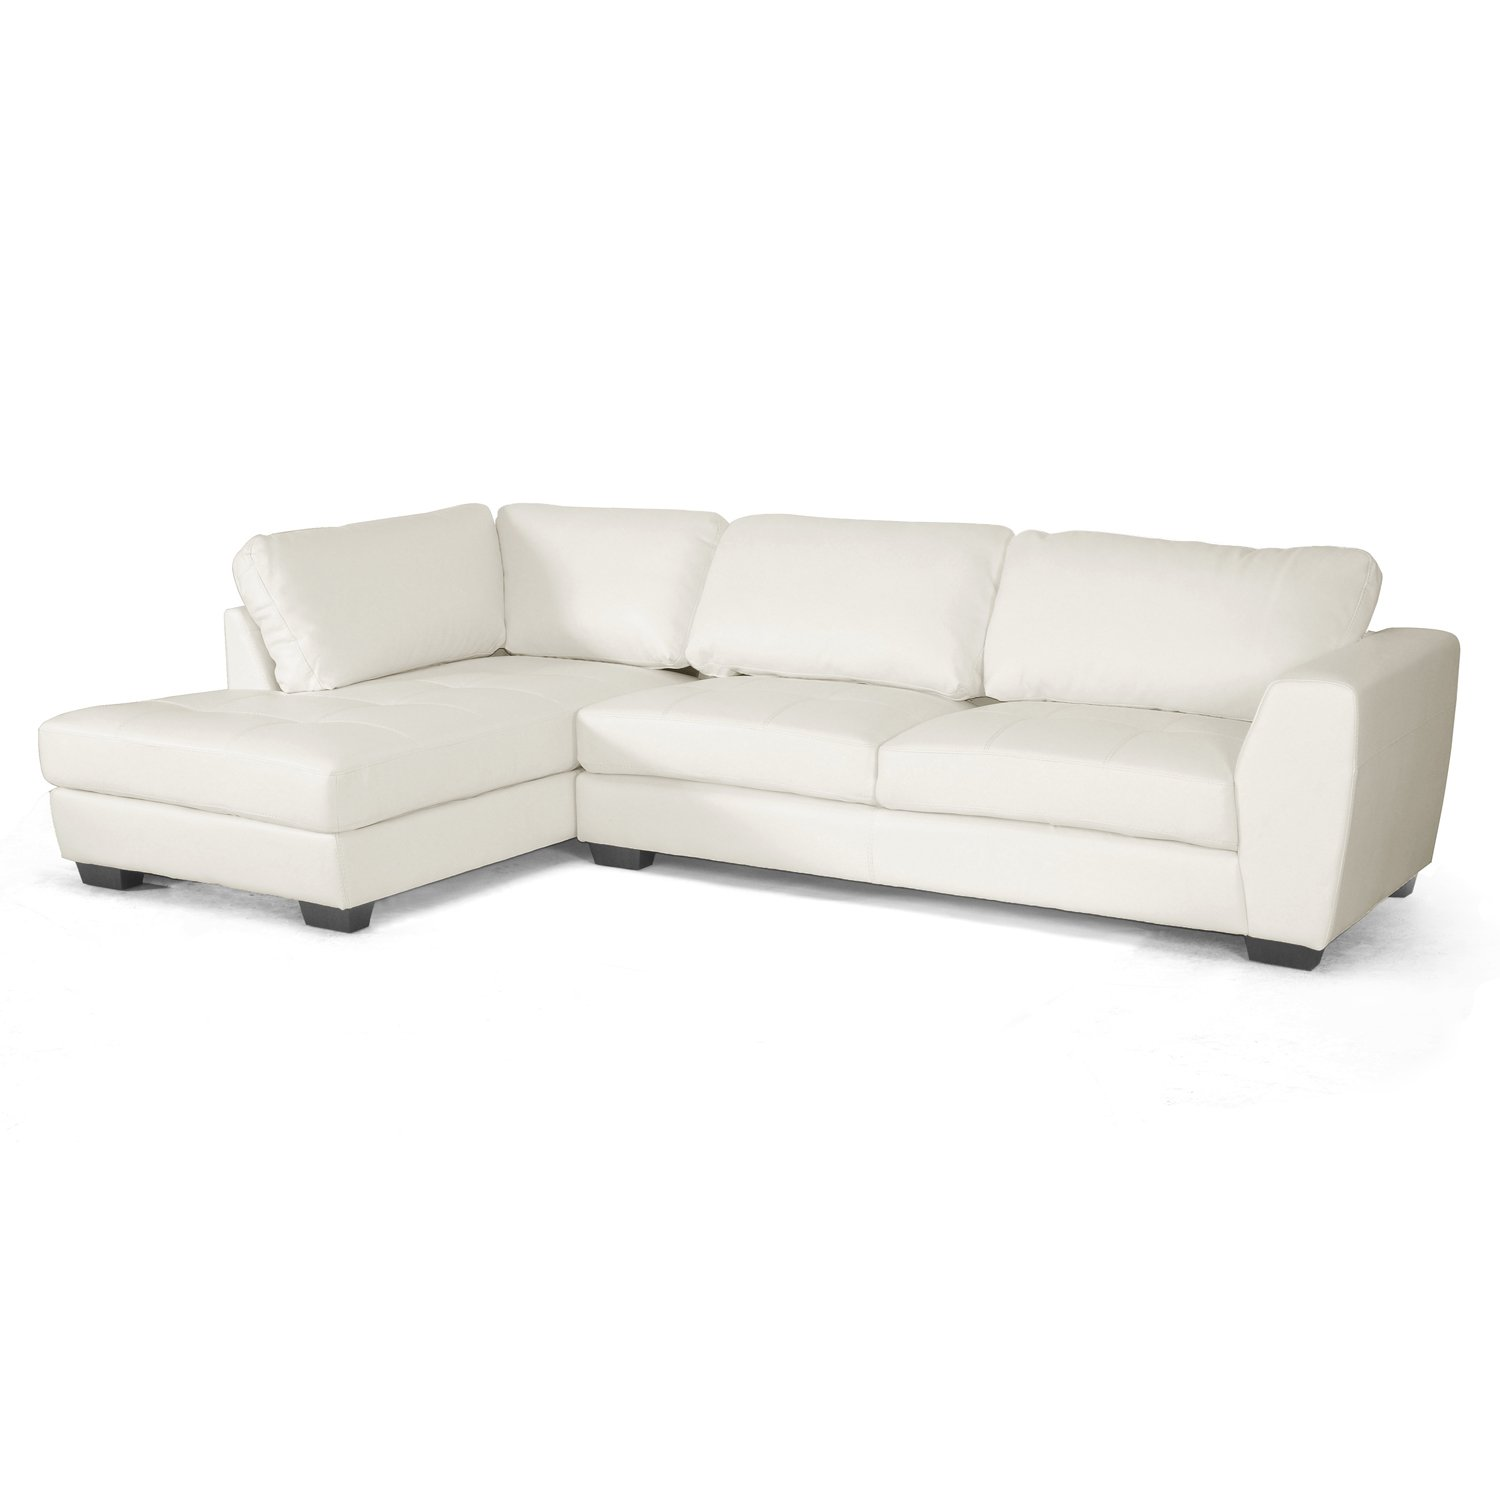 Amazon.com Baxton Studio Orland Leather Modern Sectional Sofa Set with Left Facing Chaise White Kitchen u0026 Dining  sc 1 st  Amazon.com : sectional couch with chaise - Sectionals, Sofas & Couches